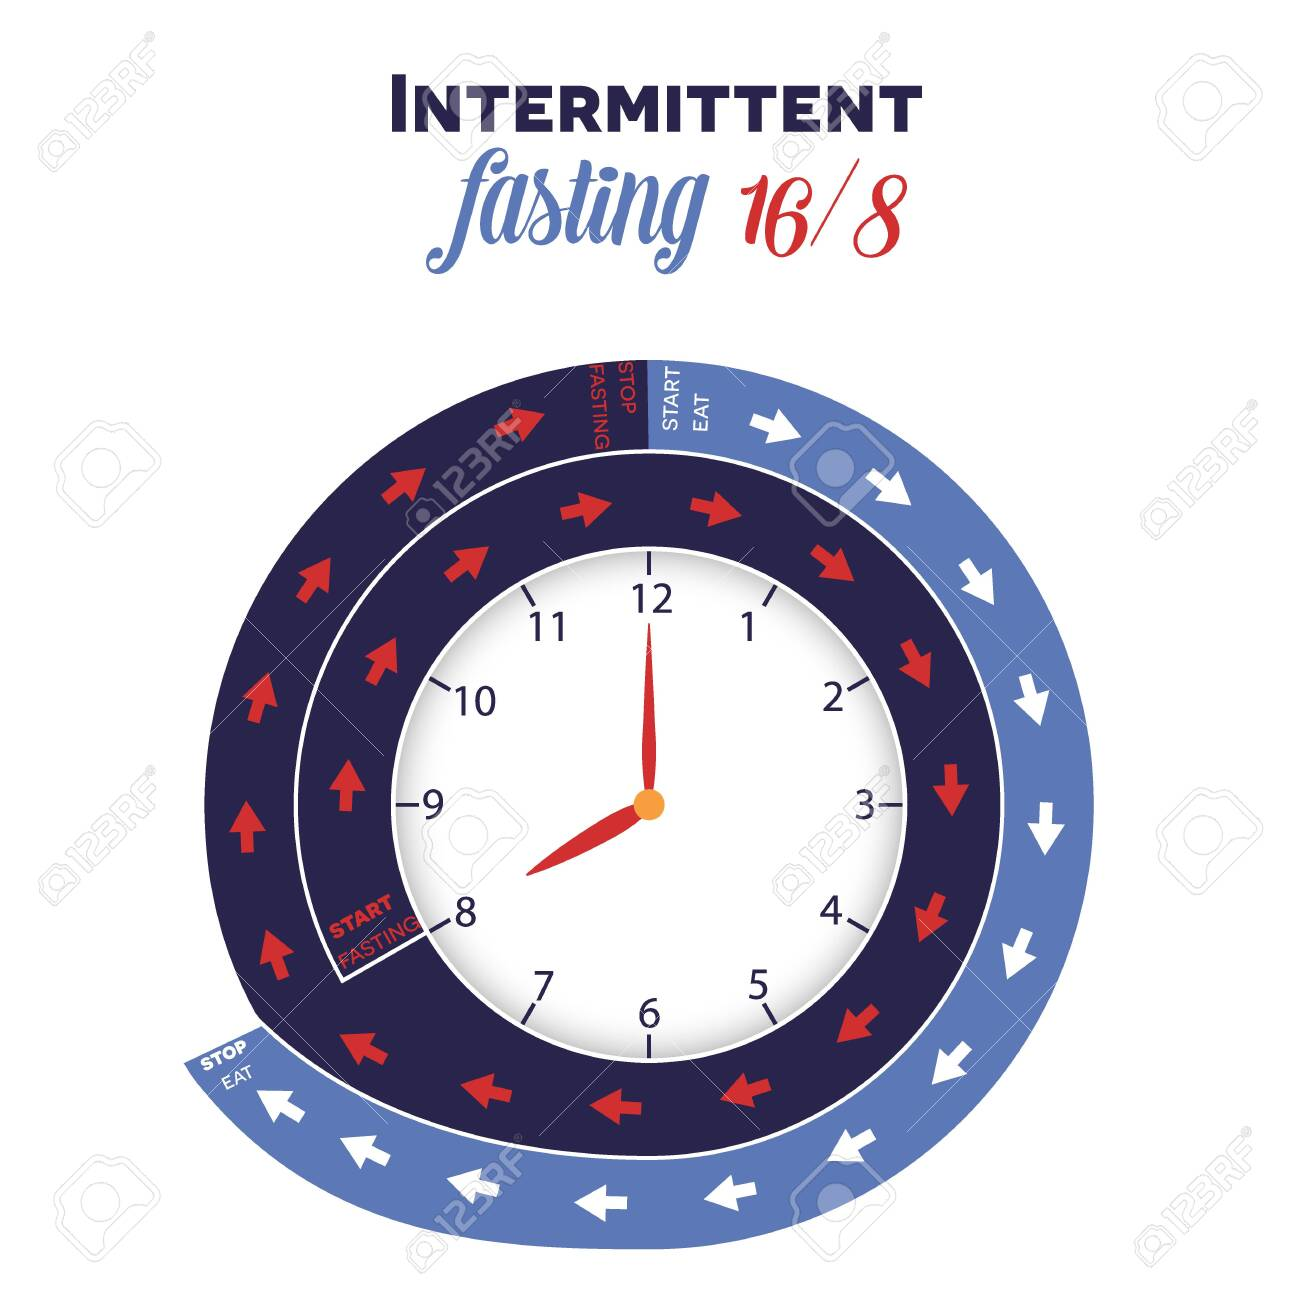 Intermittent fasting clock 16/8 for weight loss and health - 139509505